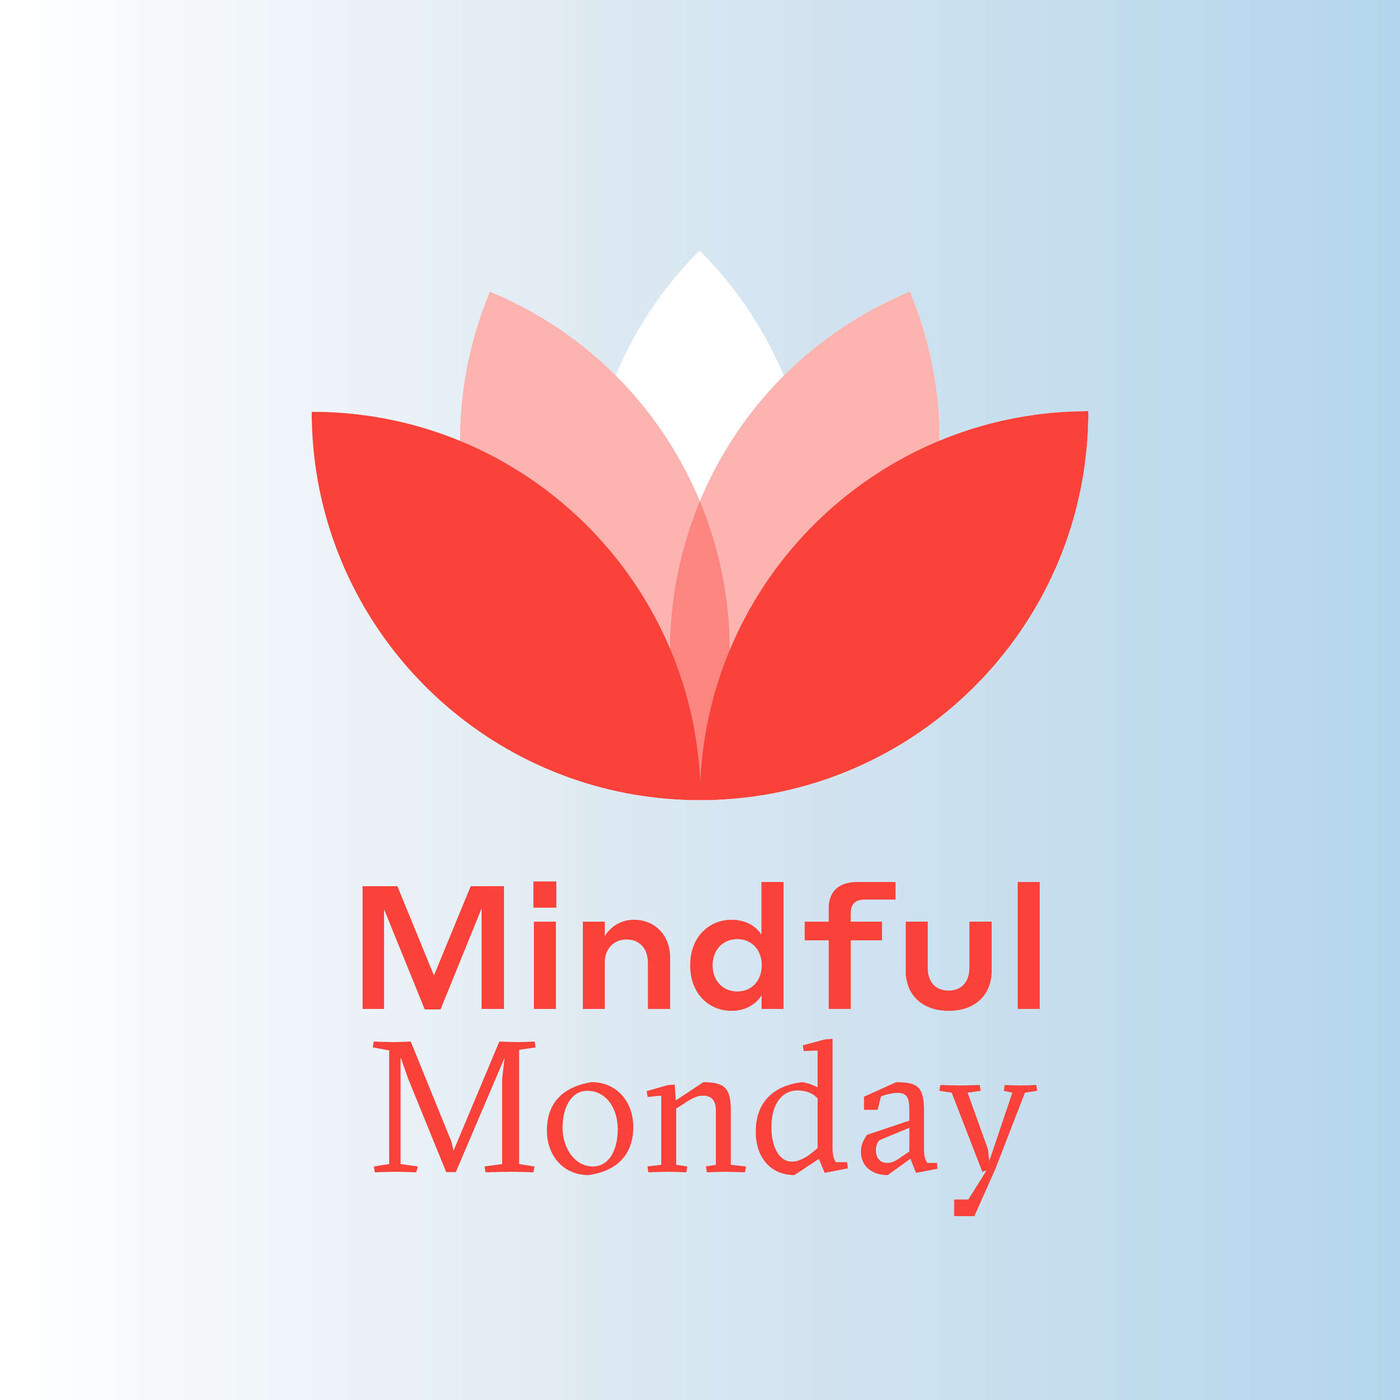 Mindful Monday: Uprooting Painful Beliefs with RAIN 15 mins (Dealing with Anxiety)